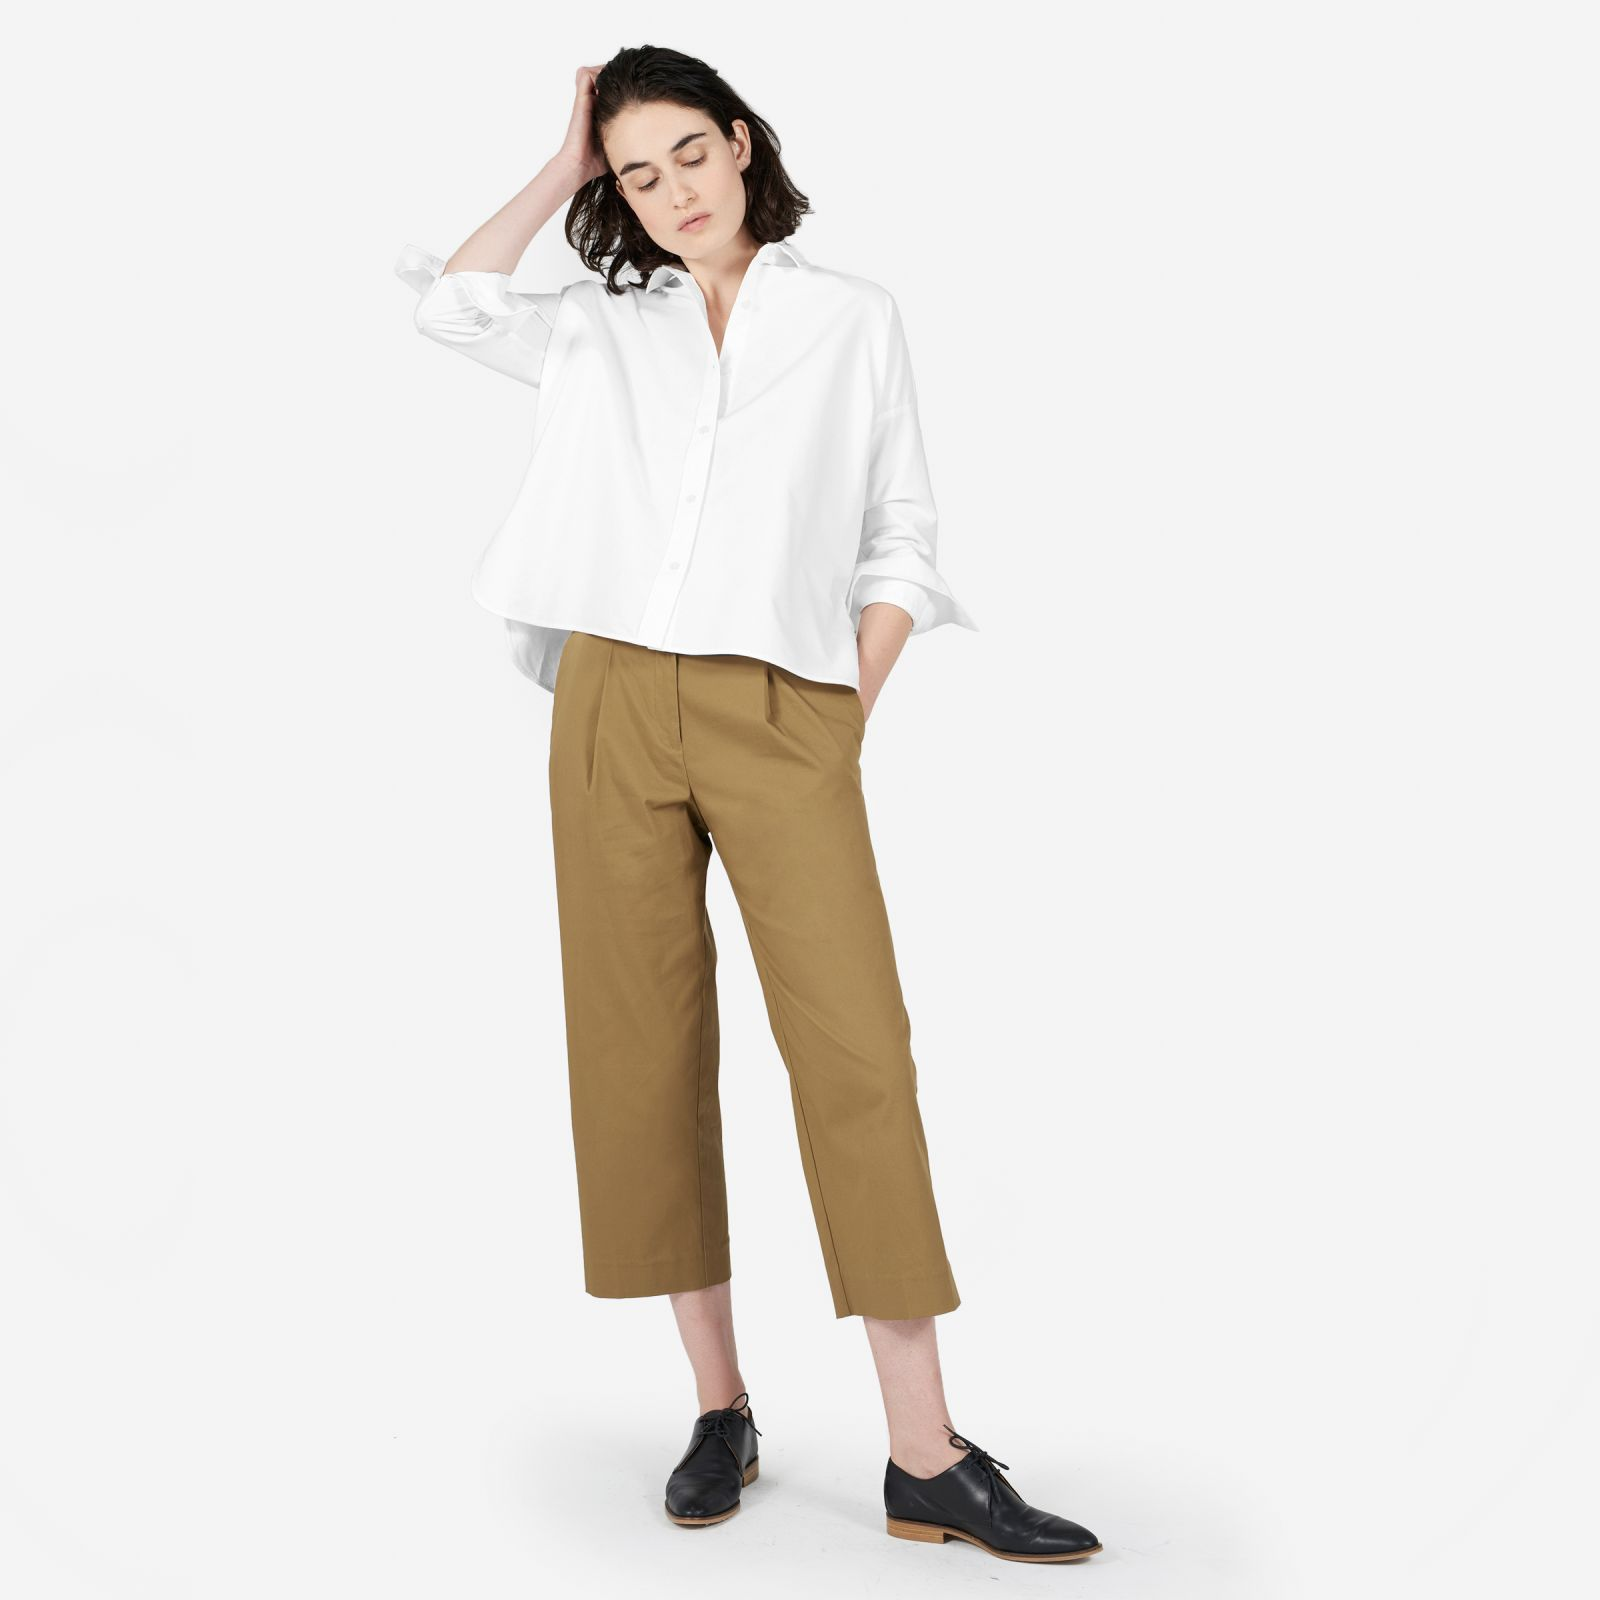 women's japanese oxford square shirt by everlane in white, size 6